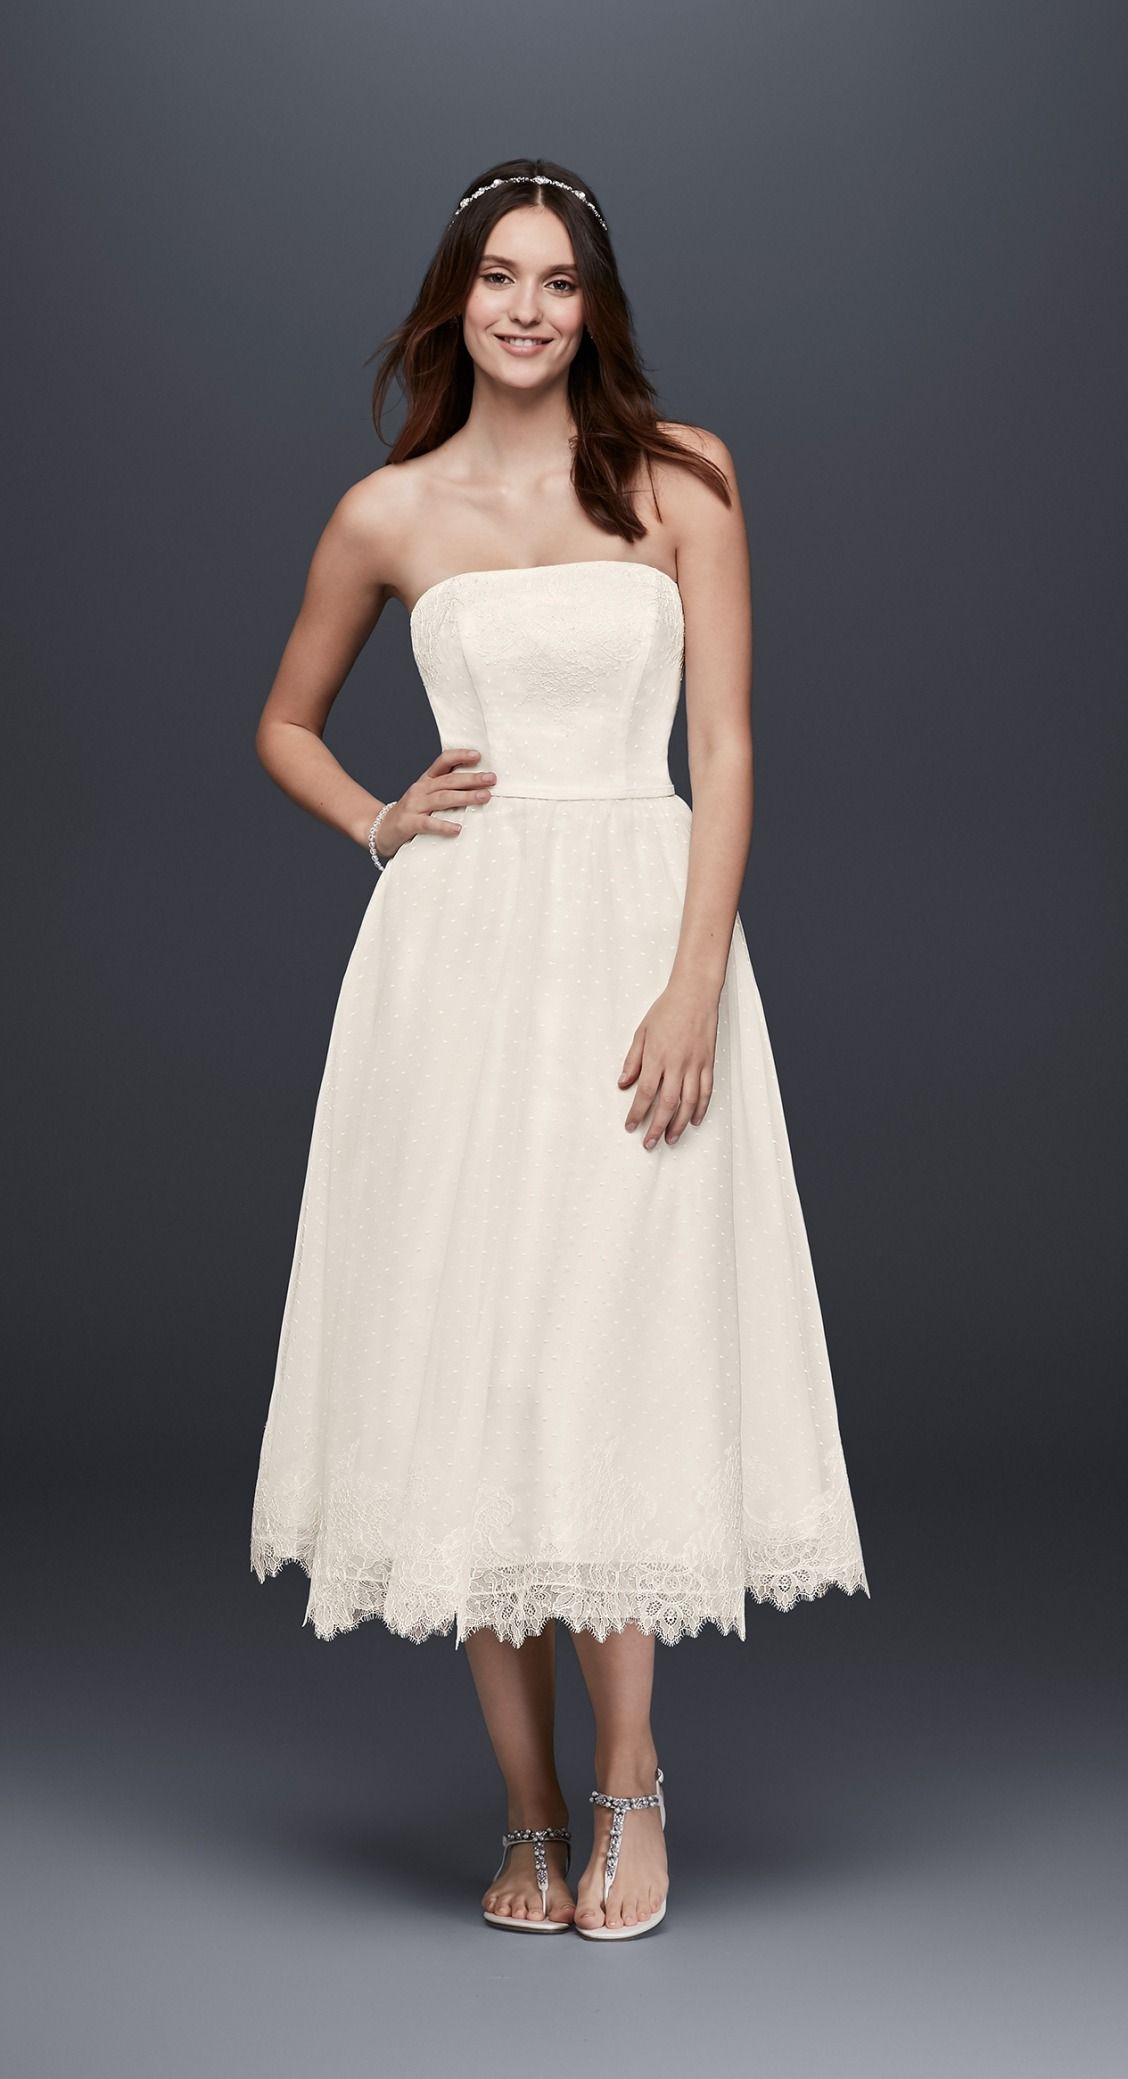 Casual wedding dresses with sleeves  This short and flirty dress is perfect for any of your wedding